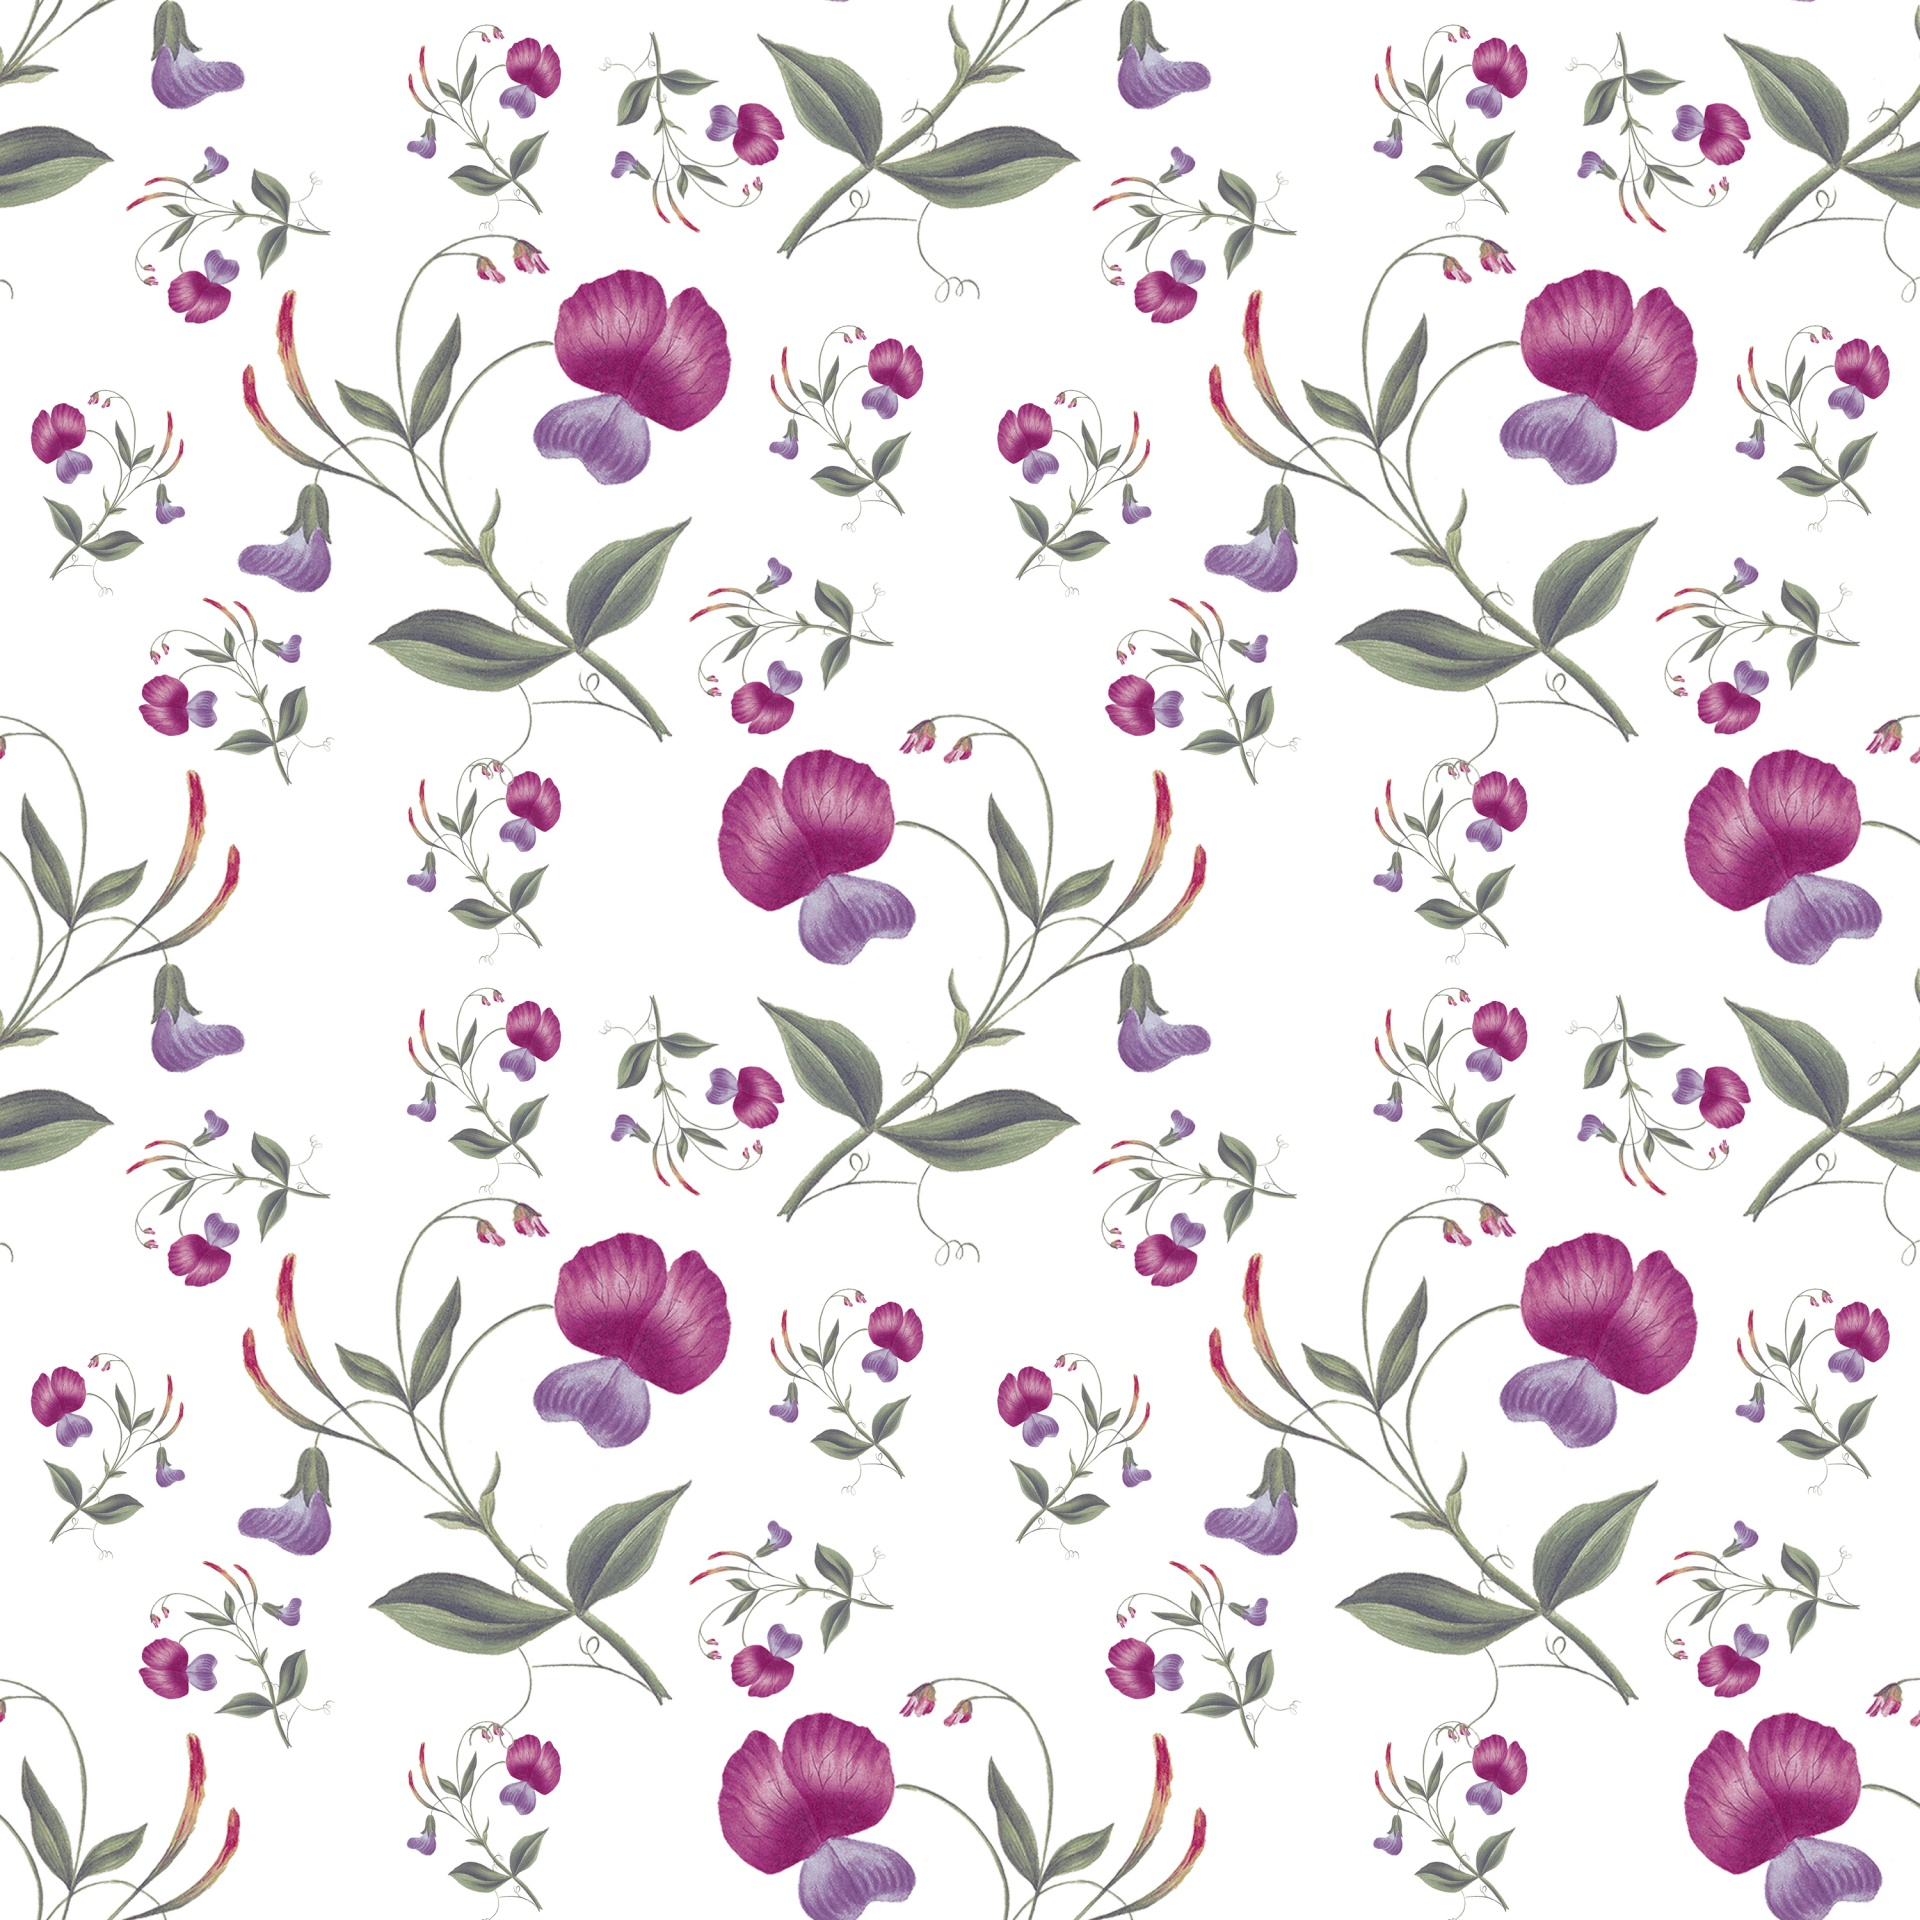 Floral Flowers Flower Wallpaper Paper Free Image From Needpix Com